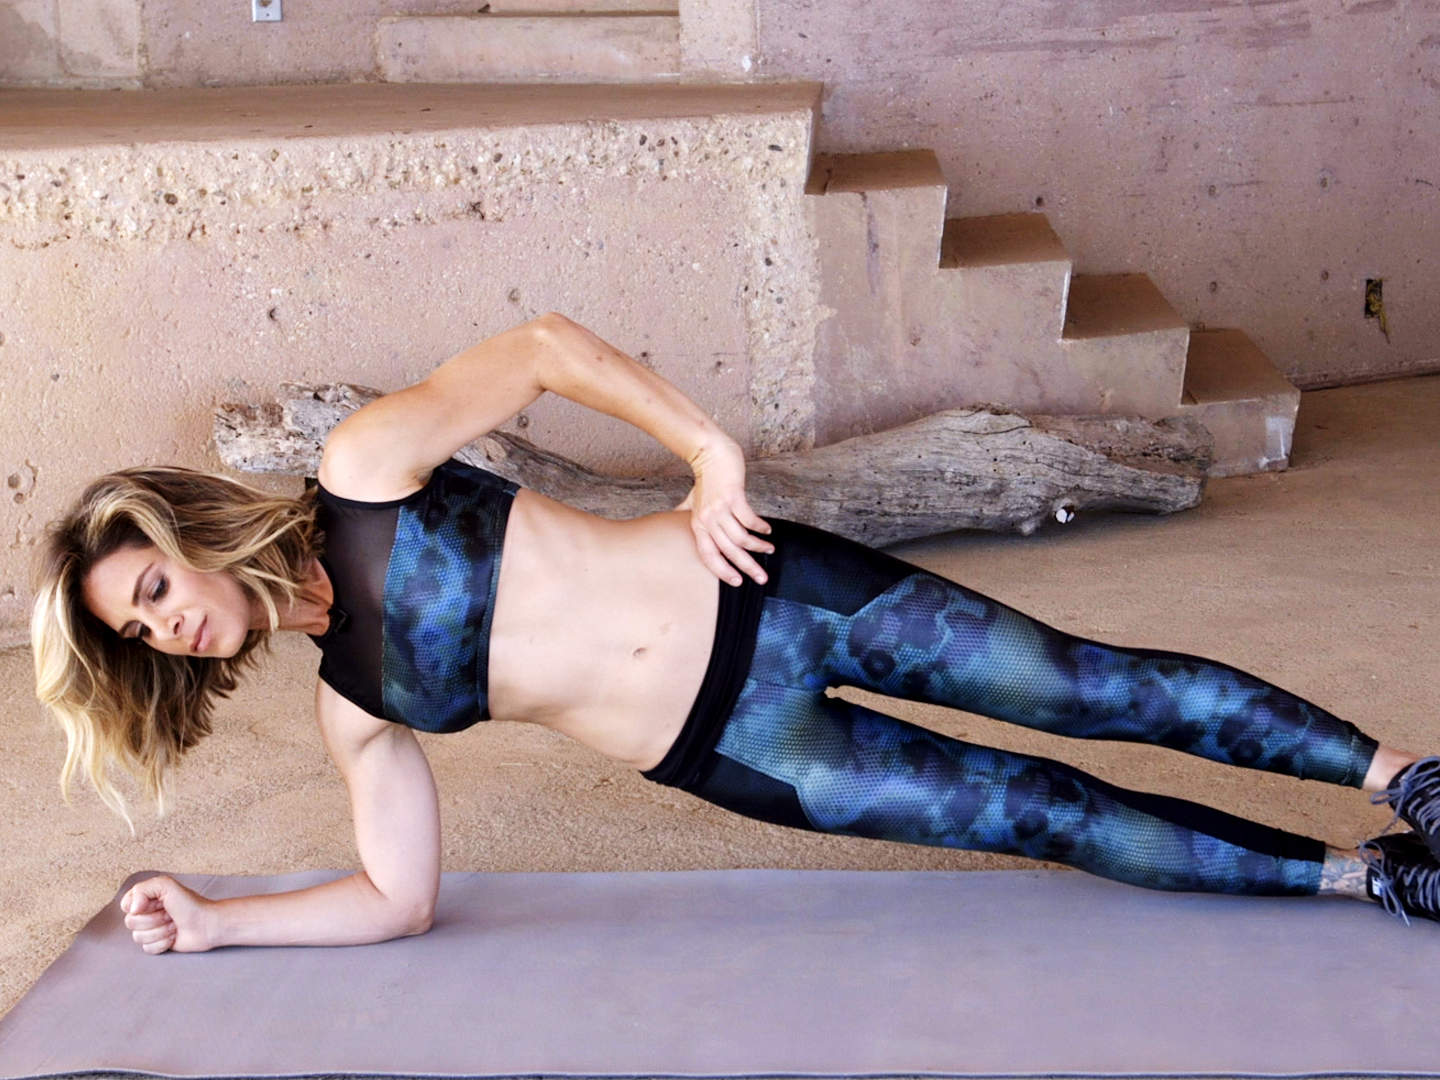 jillian-michaels-video-still-rolling-plank-2